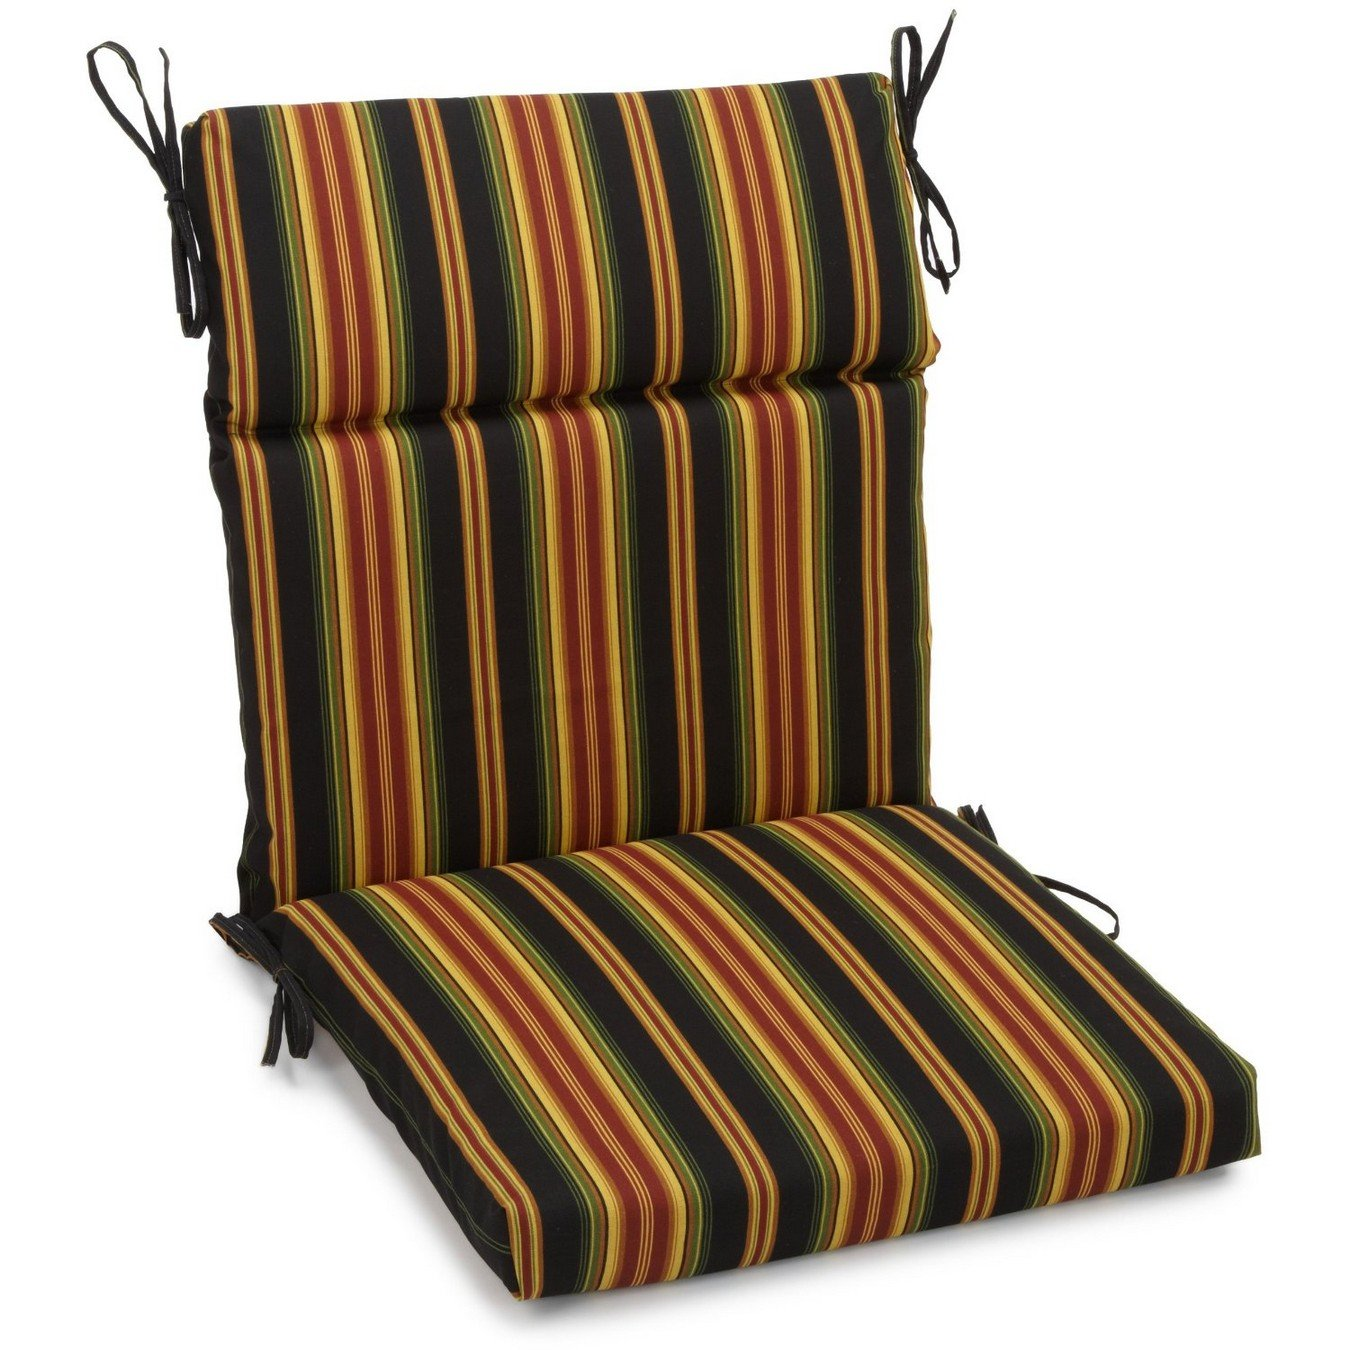 Blazing Needles Spun Polyester Patterned Outdoor Squared Seat Back Chair Cushion, 20 x 42 , Lyndhurst Raven